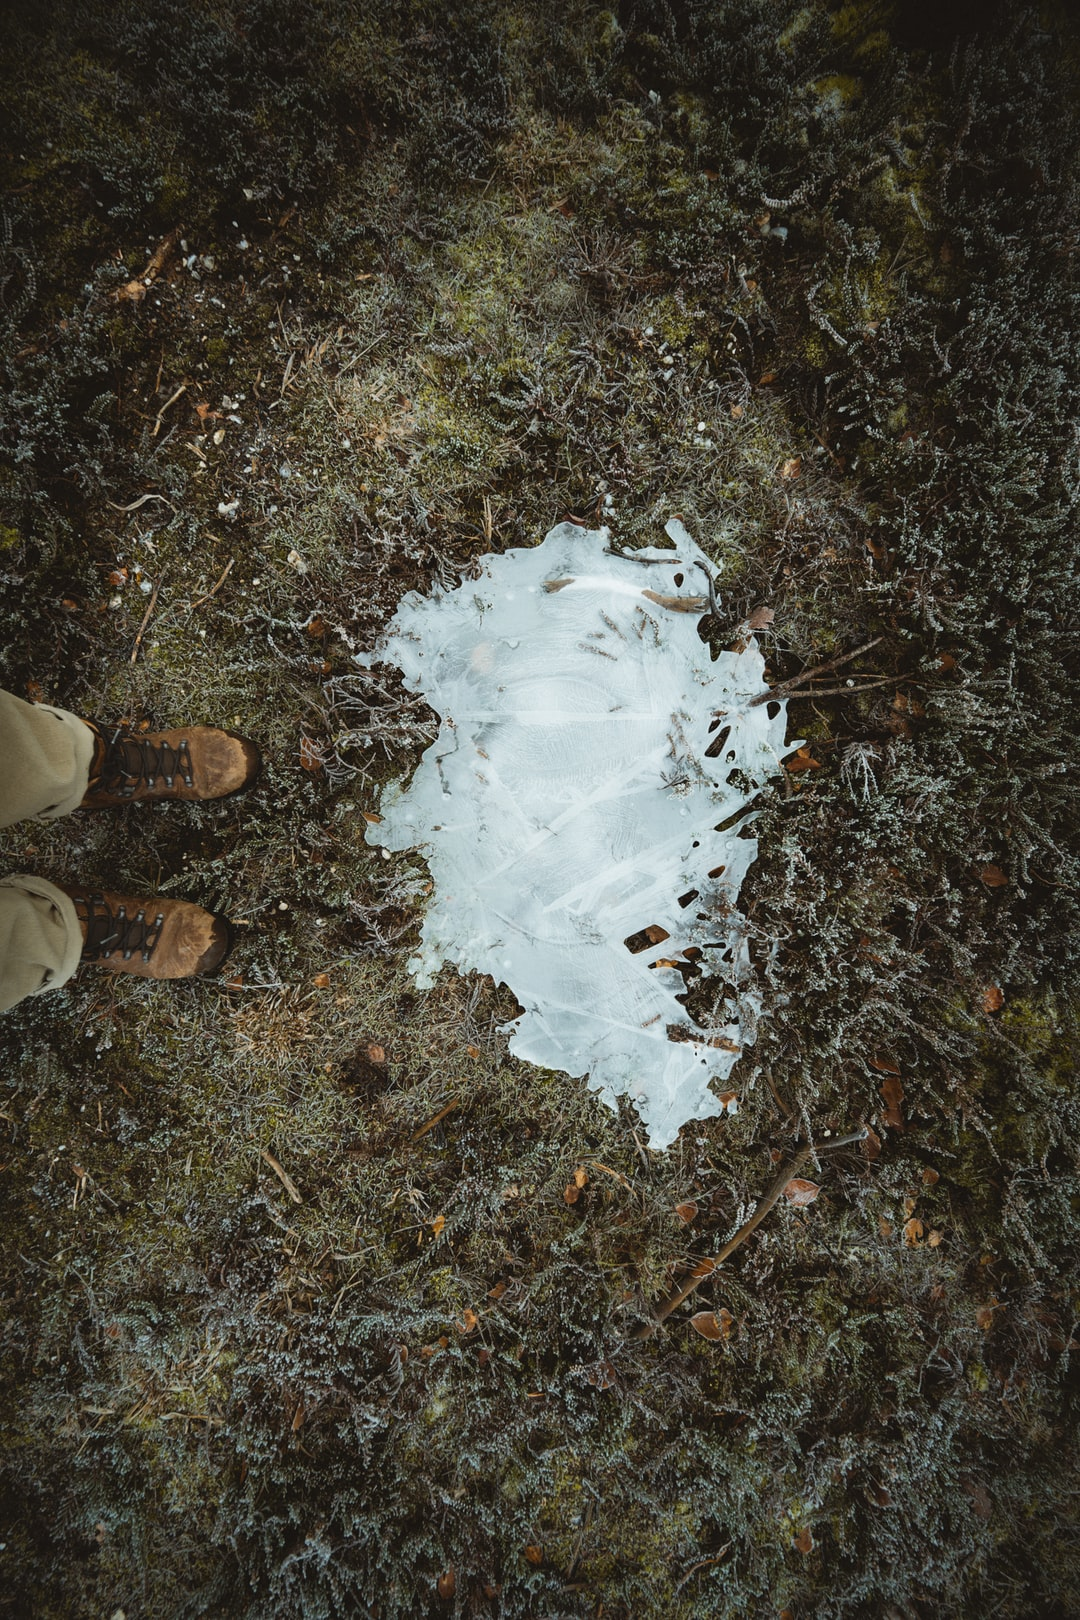 Hikers boots by an icy puddle